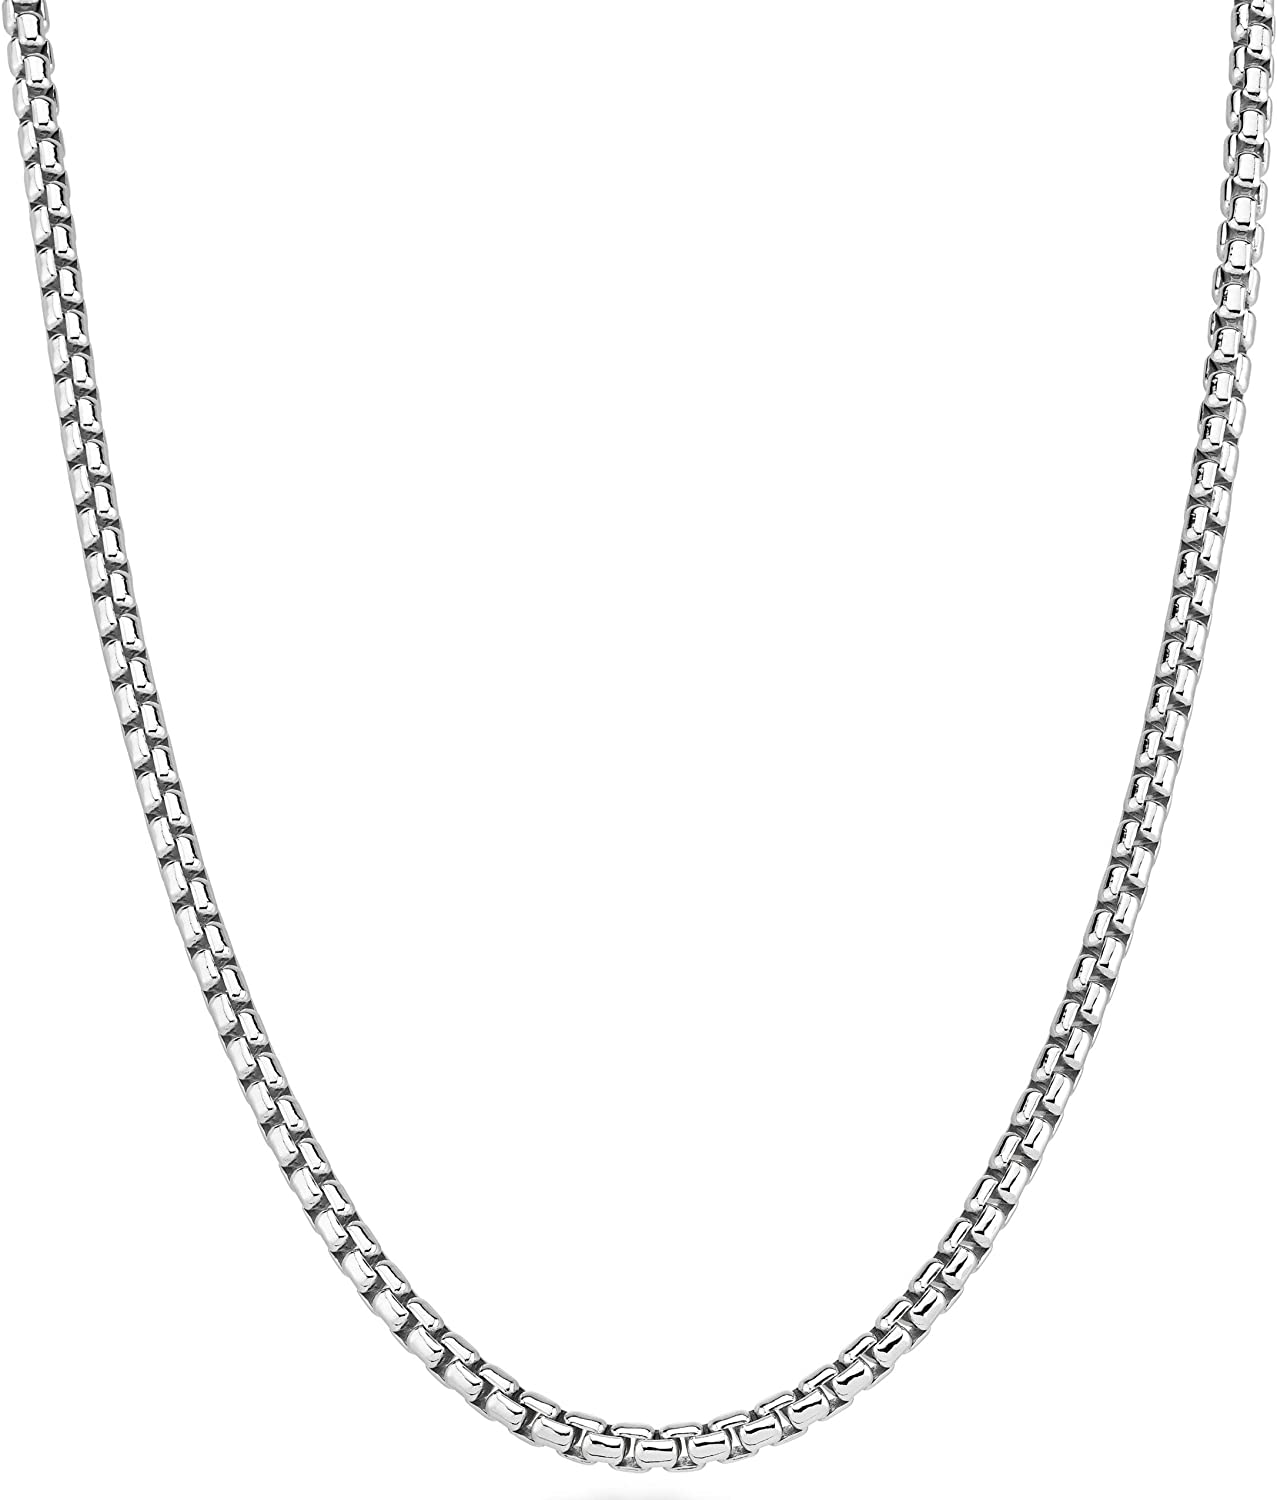 Miabella Solid 925 Sterling Silver Italian 3.5mm Square Rolo Link Round Box Chain Necklace Bracelet for Women Men, 7, 7.5, 8, 8.5, 9, 16, 18, 20, 22, 24, 26, 30 Inch Made in Italy